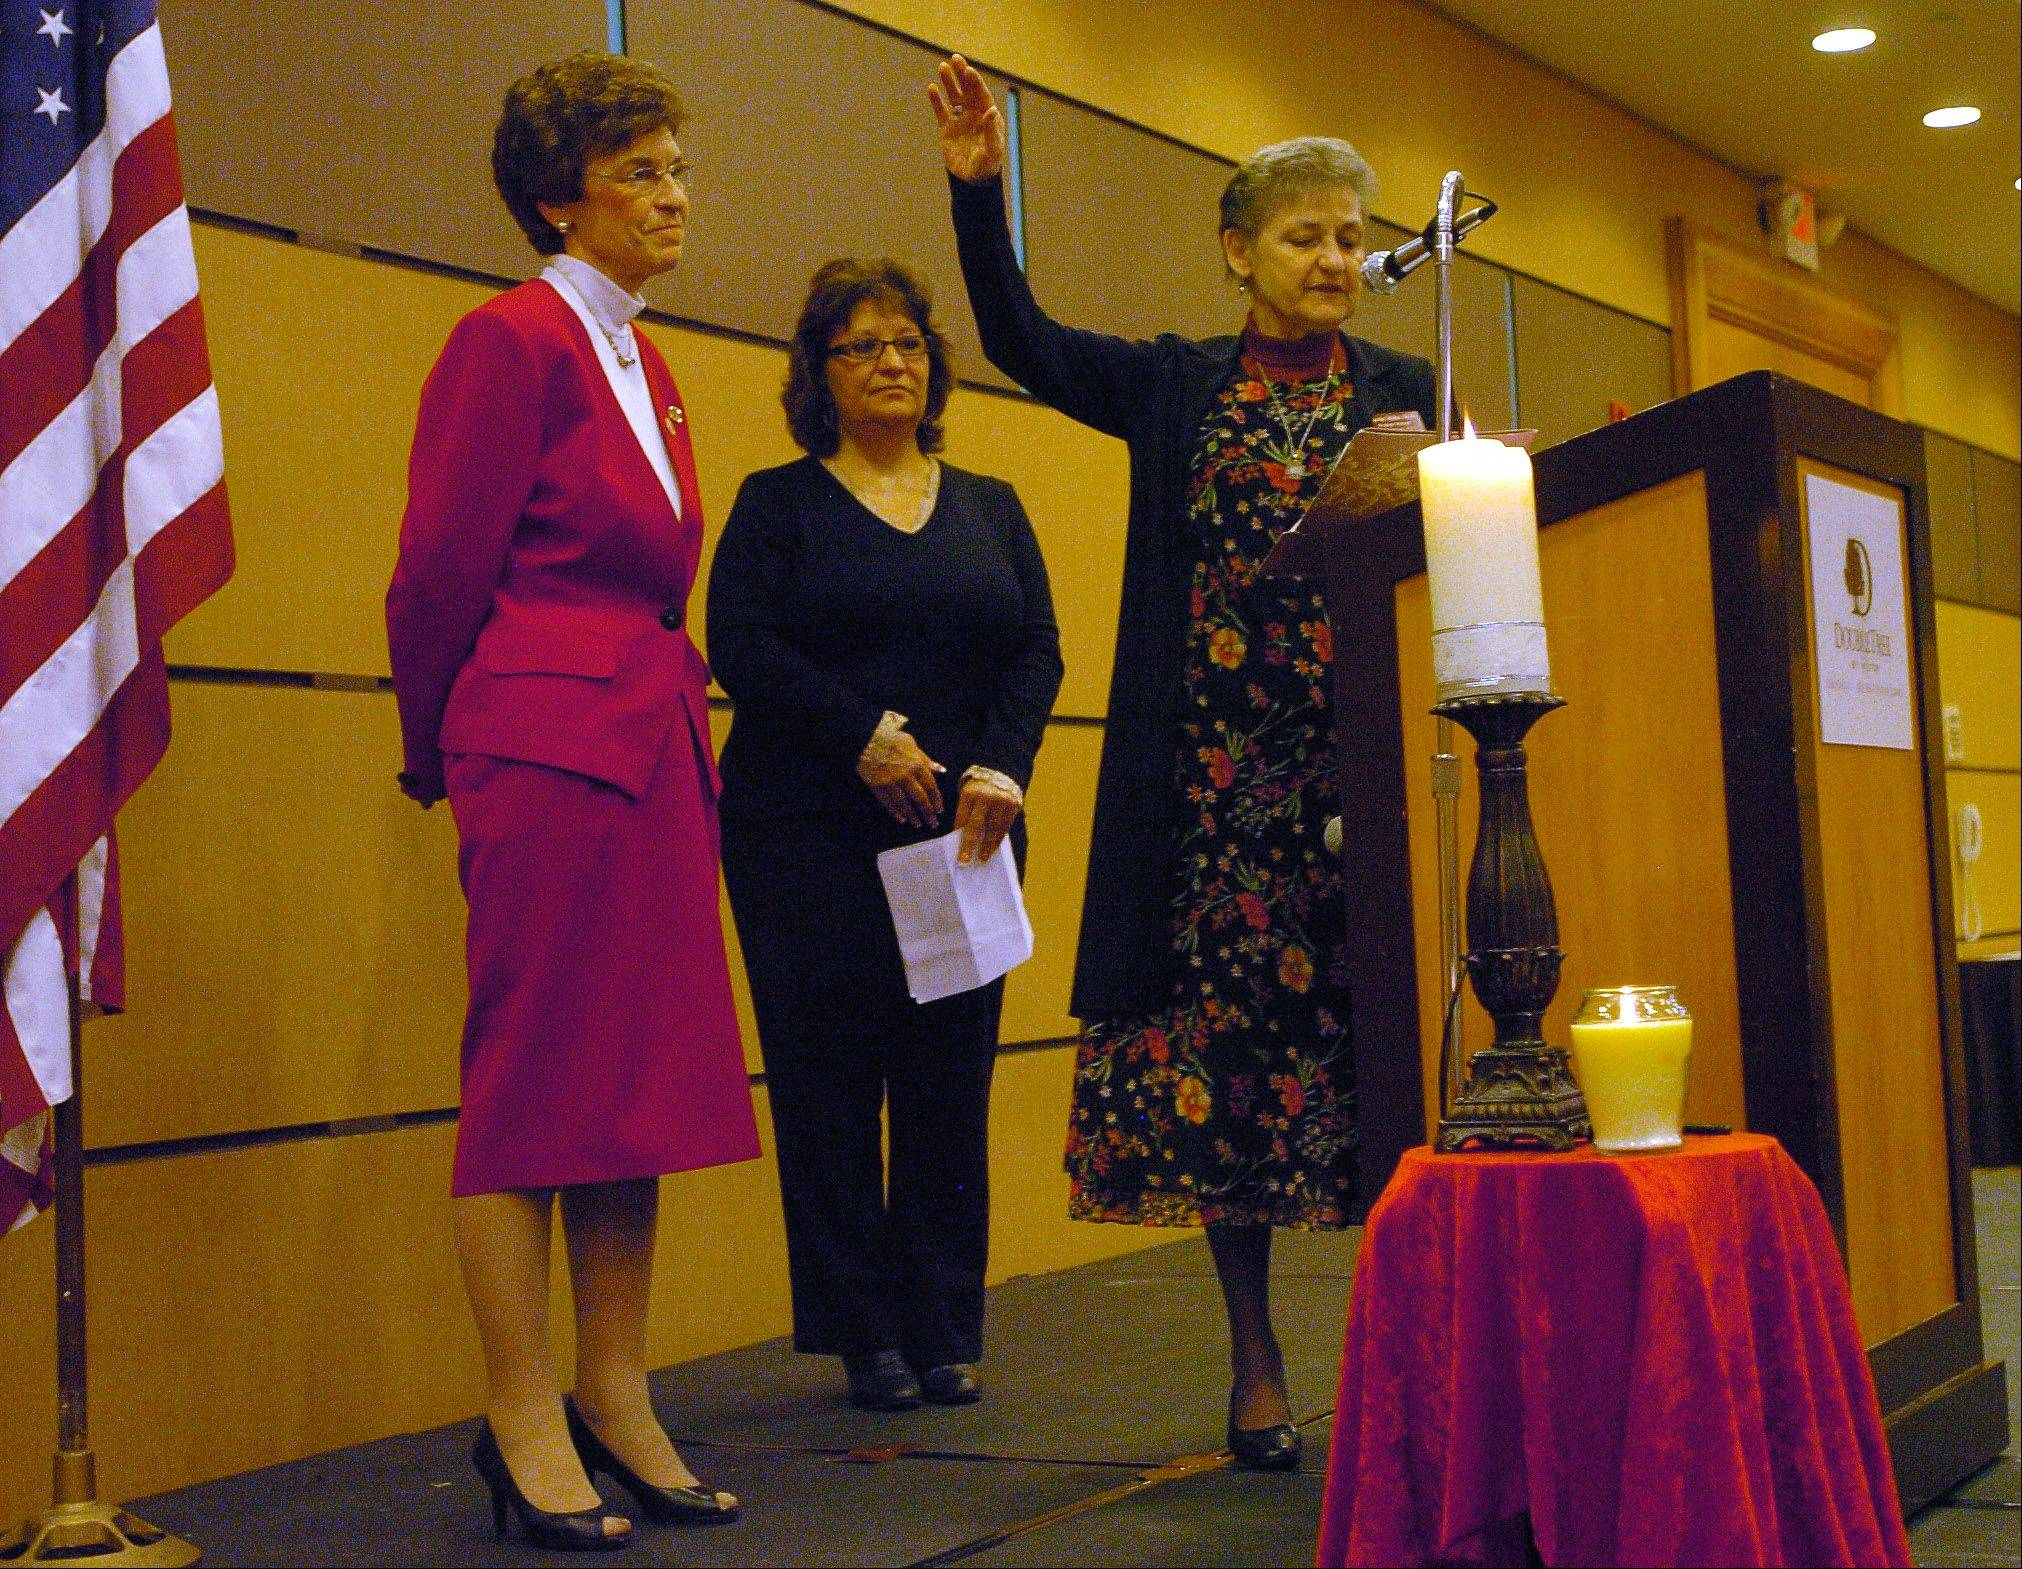 Arlene Mulder gets a blessing Thursday from Sister Carrie Miller of Sisters of the Living Word, right, and Lisa Math, center, during her final Mayor's 26th annual Community Prayer Breakfast.